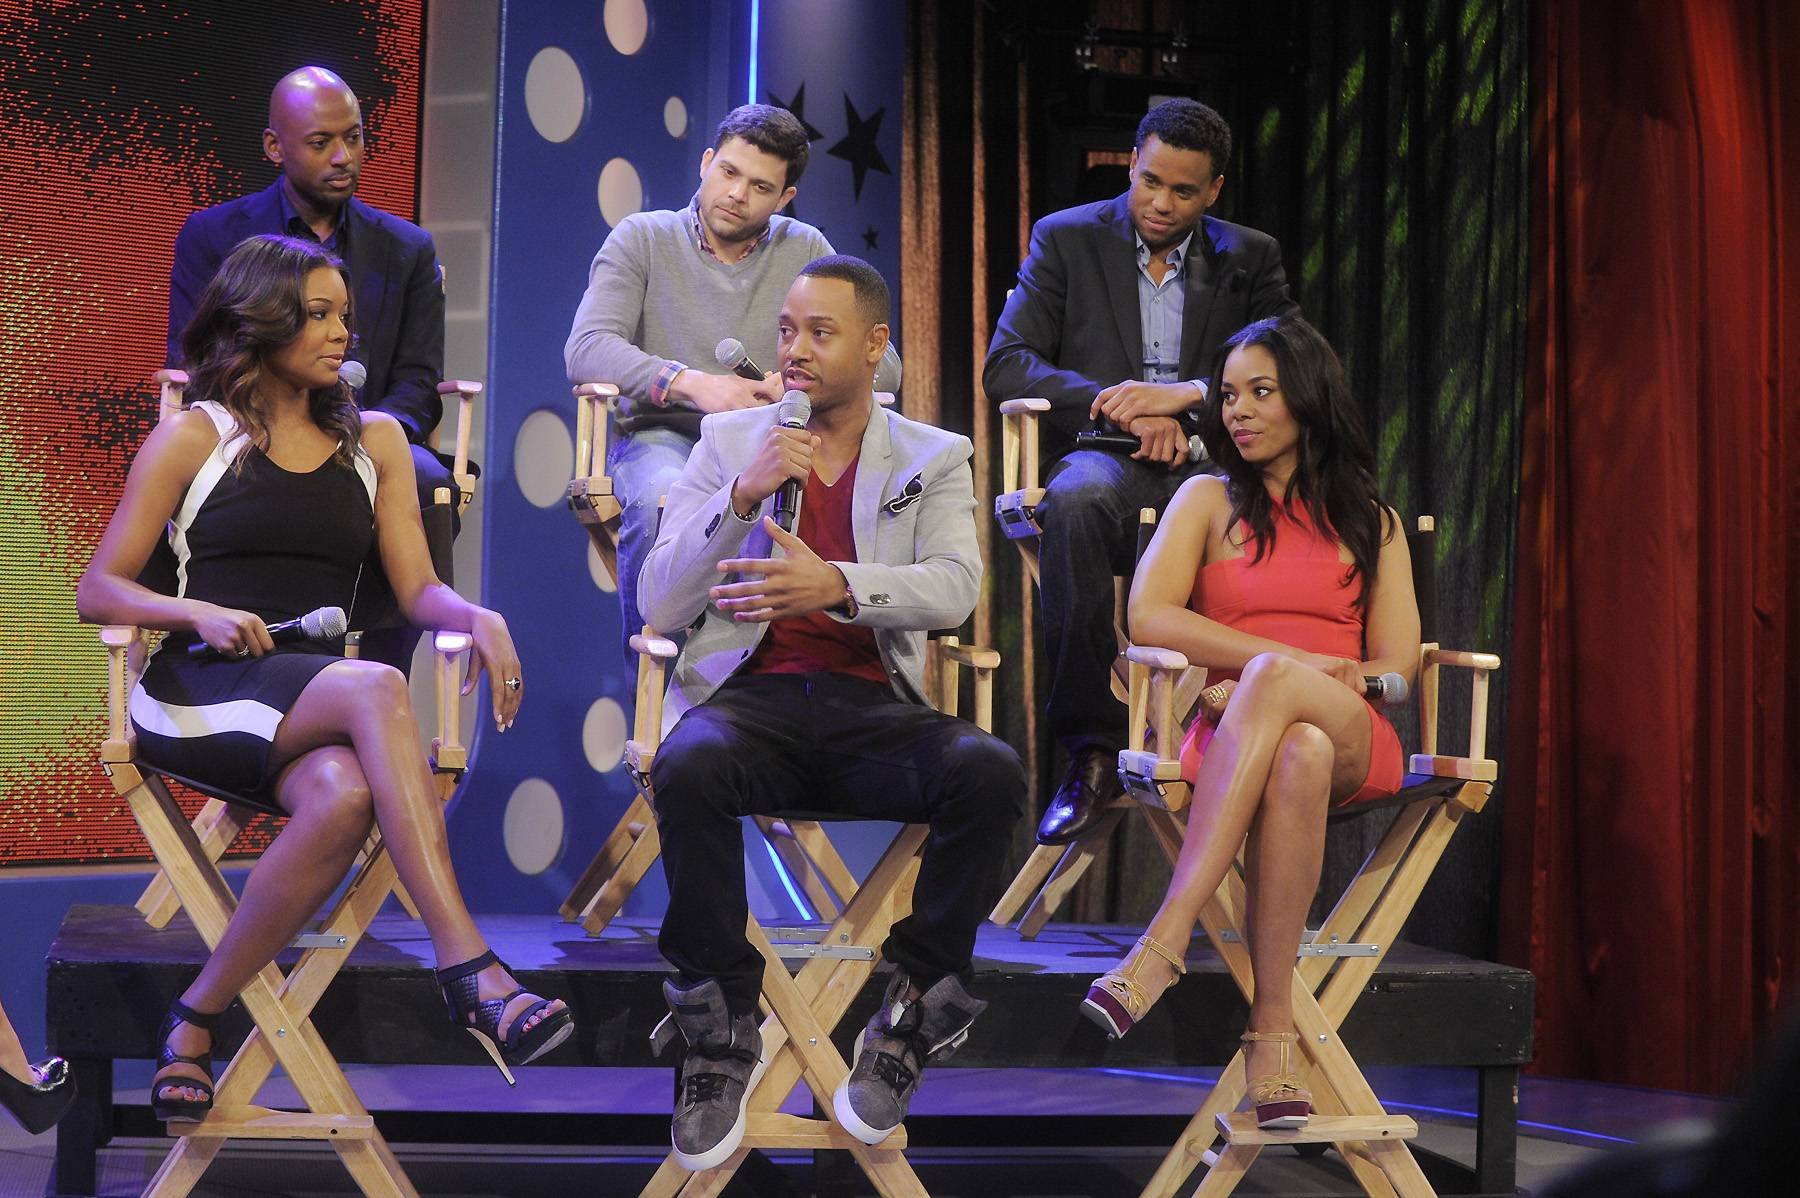 """The Cast of Think Like A Man - Gabrielle Union, Terrence J, Regina Hall, Romany Malco, Jerry Ferrara and Michael Ealy of """"Think Like a Man"""" at 106 & Park, April 5, 2012. (photo: John Ricard / BET)"""